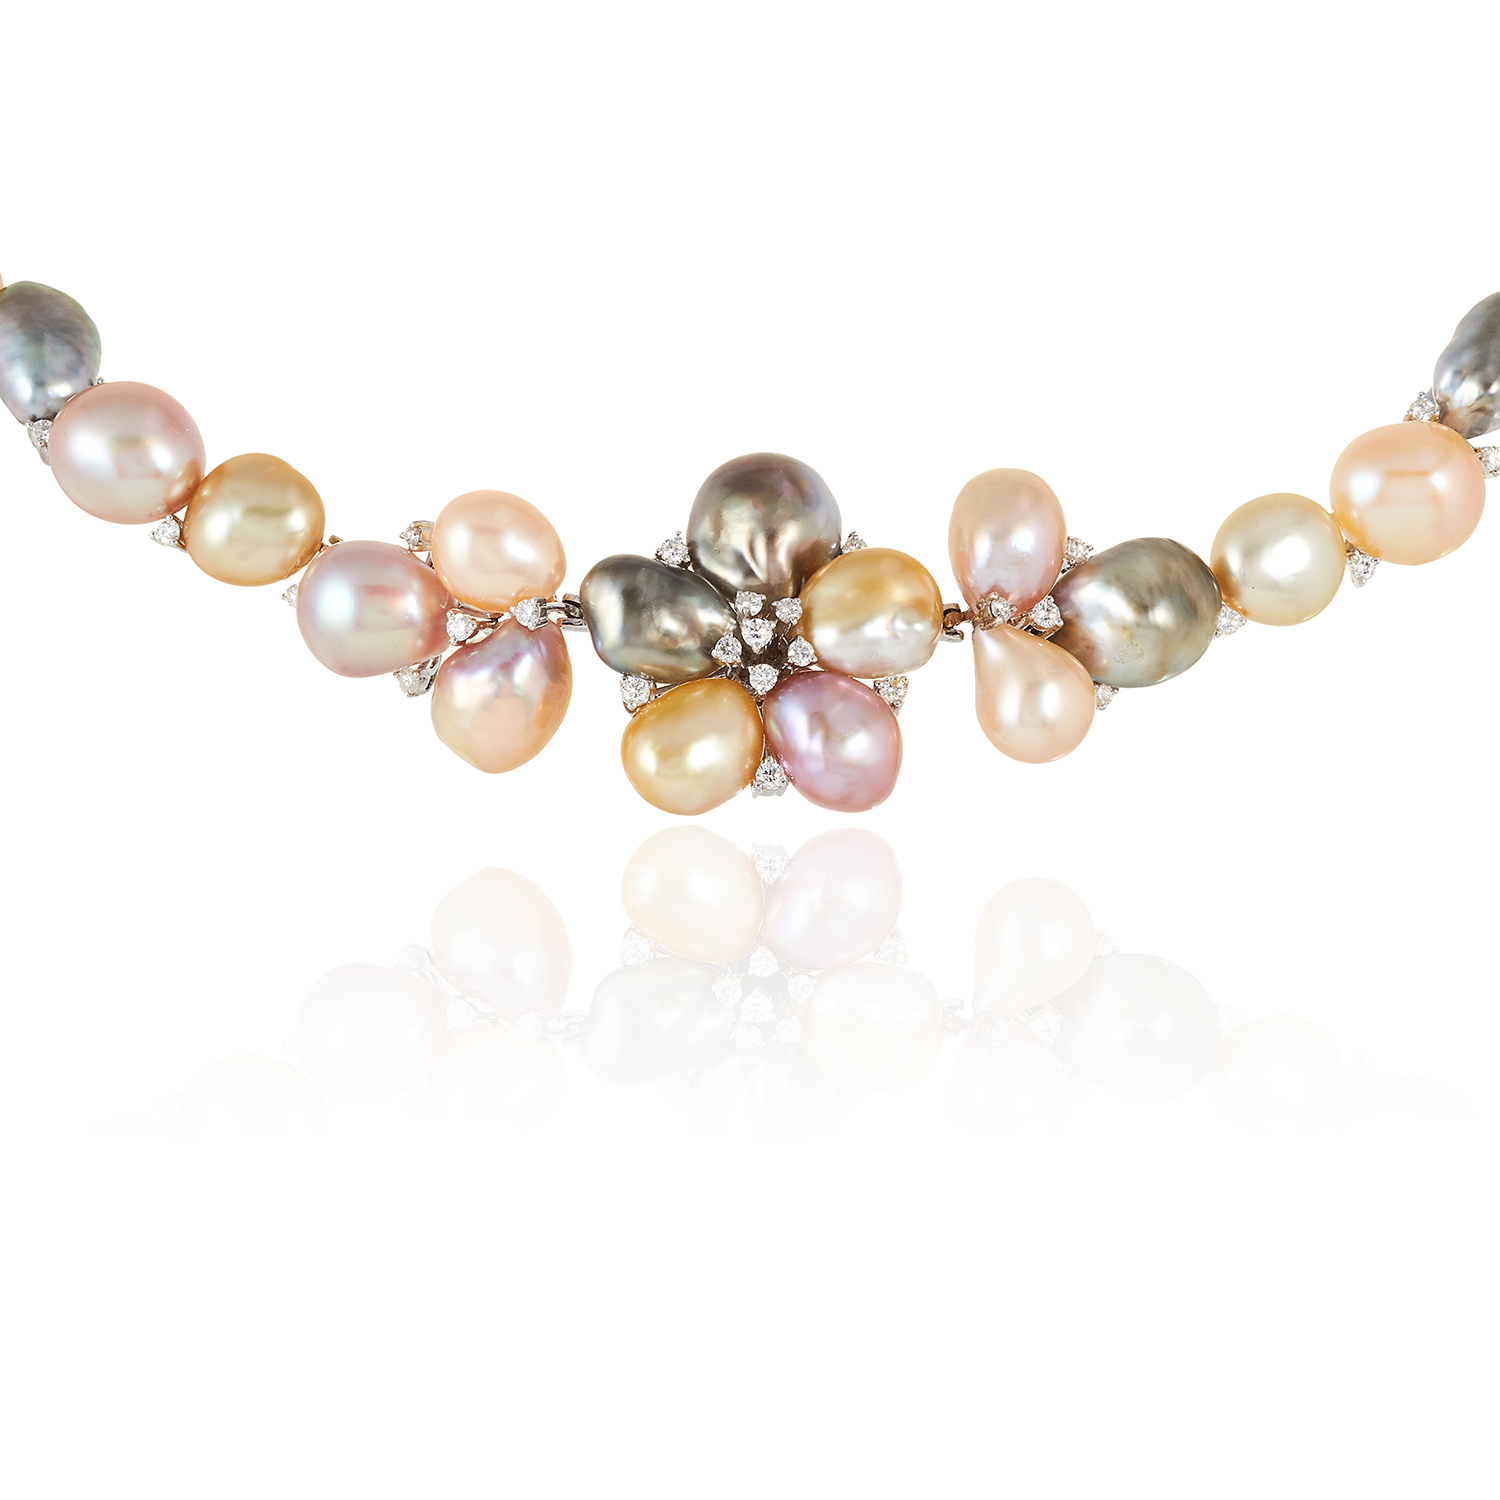 A PEARL AND DIAMOND NECKLACE, SCHOEFFEL in 18ct white gold, designed as floral motif jewelled with